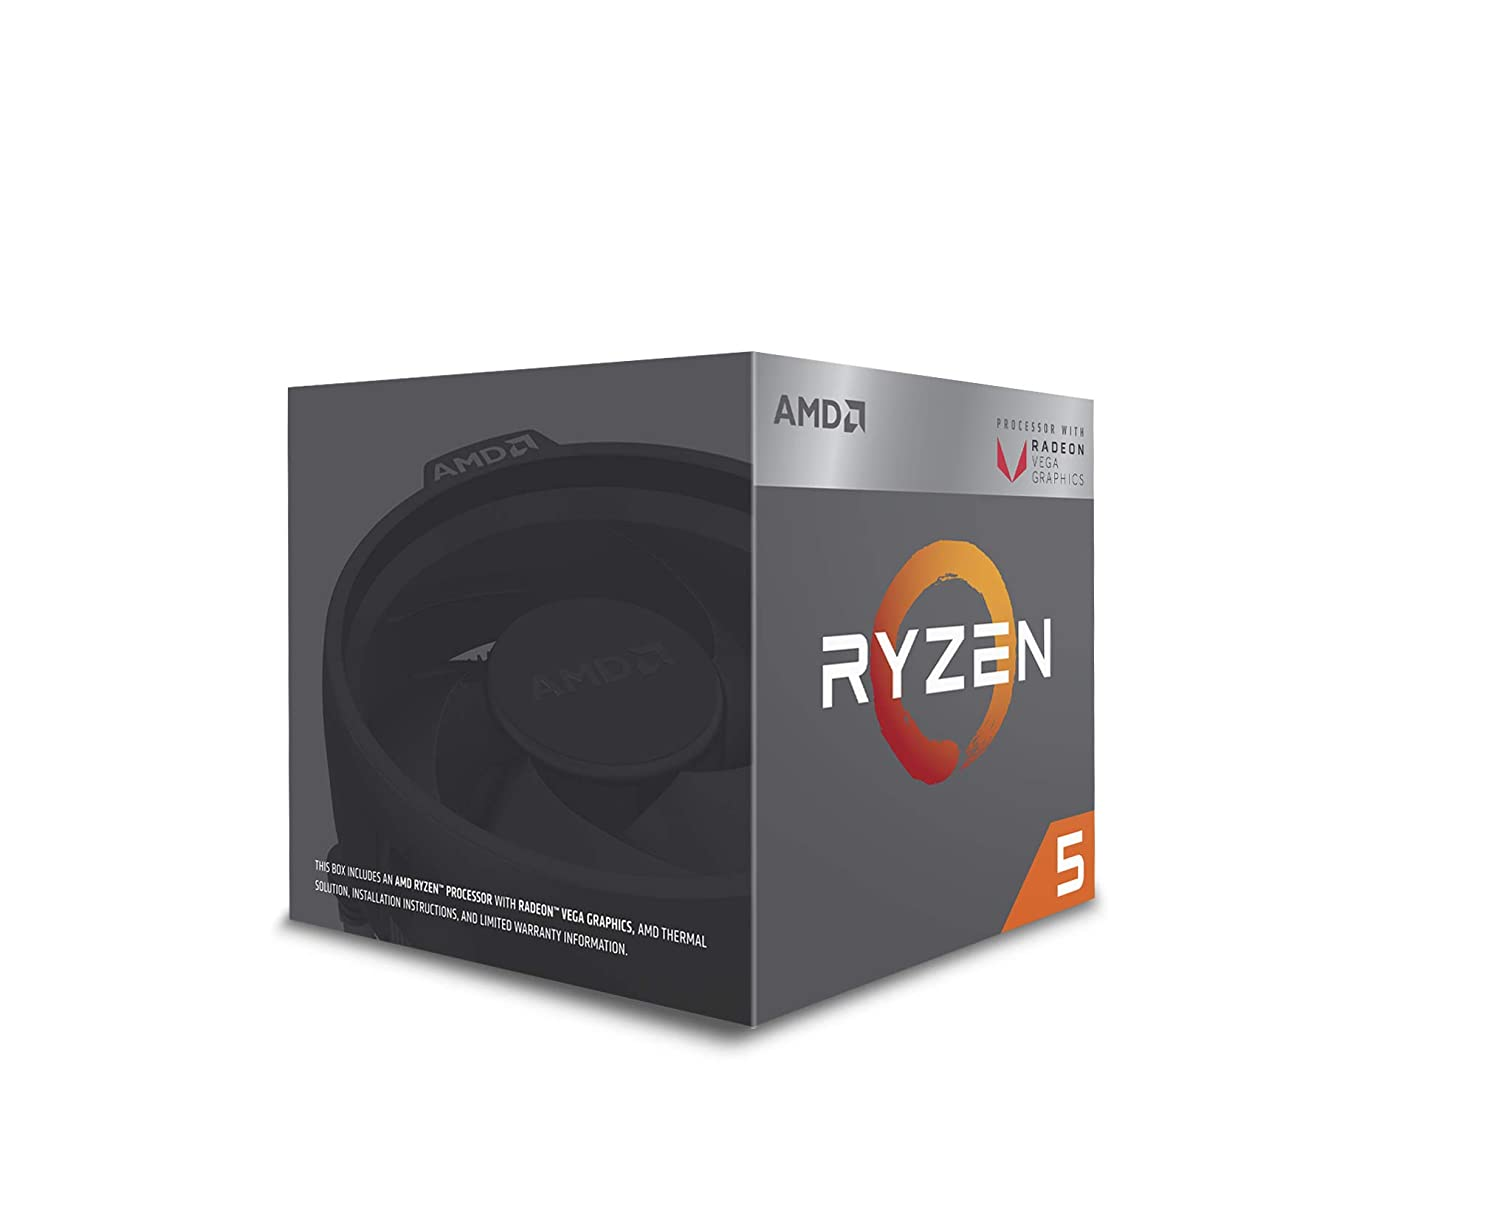 Amazon In Buy Amd Ryzen 5 2400g Desktop Processor Of 4 Core With Speed Upto 3 9ghz And Am4 Socket Radeon Rx Vega 11 Graphics Yd2400c5fbbox Online At Low Prices In India Amd